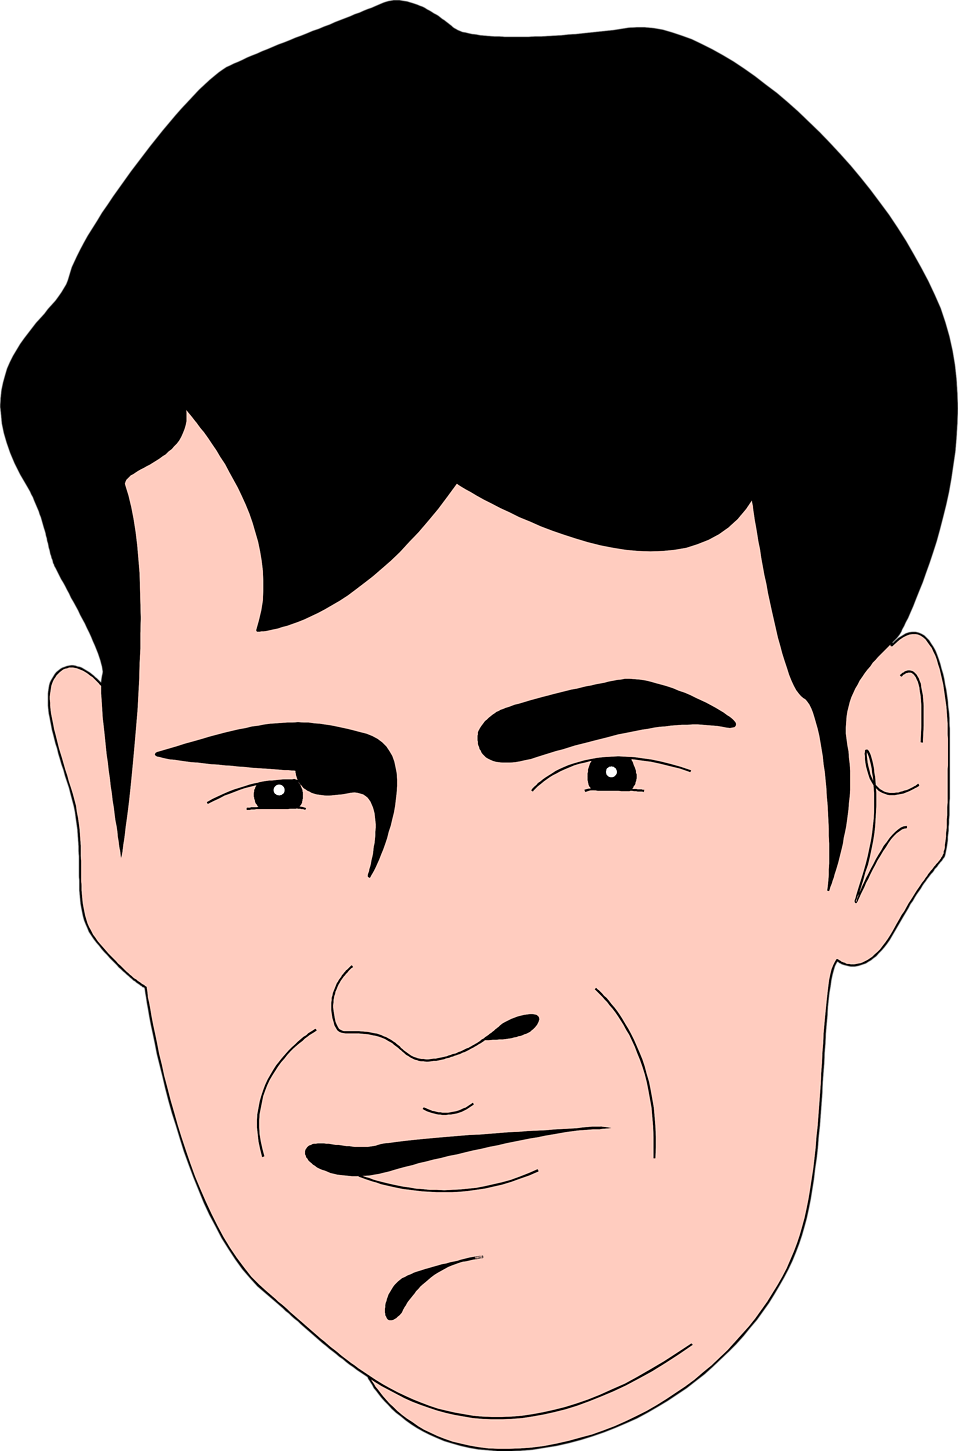 Face clipart man.  collection of high